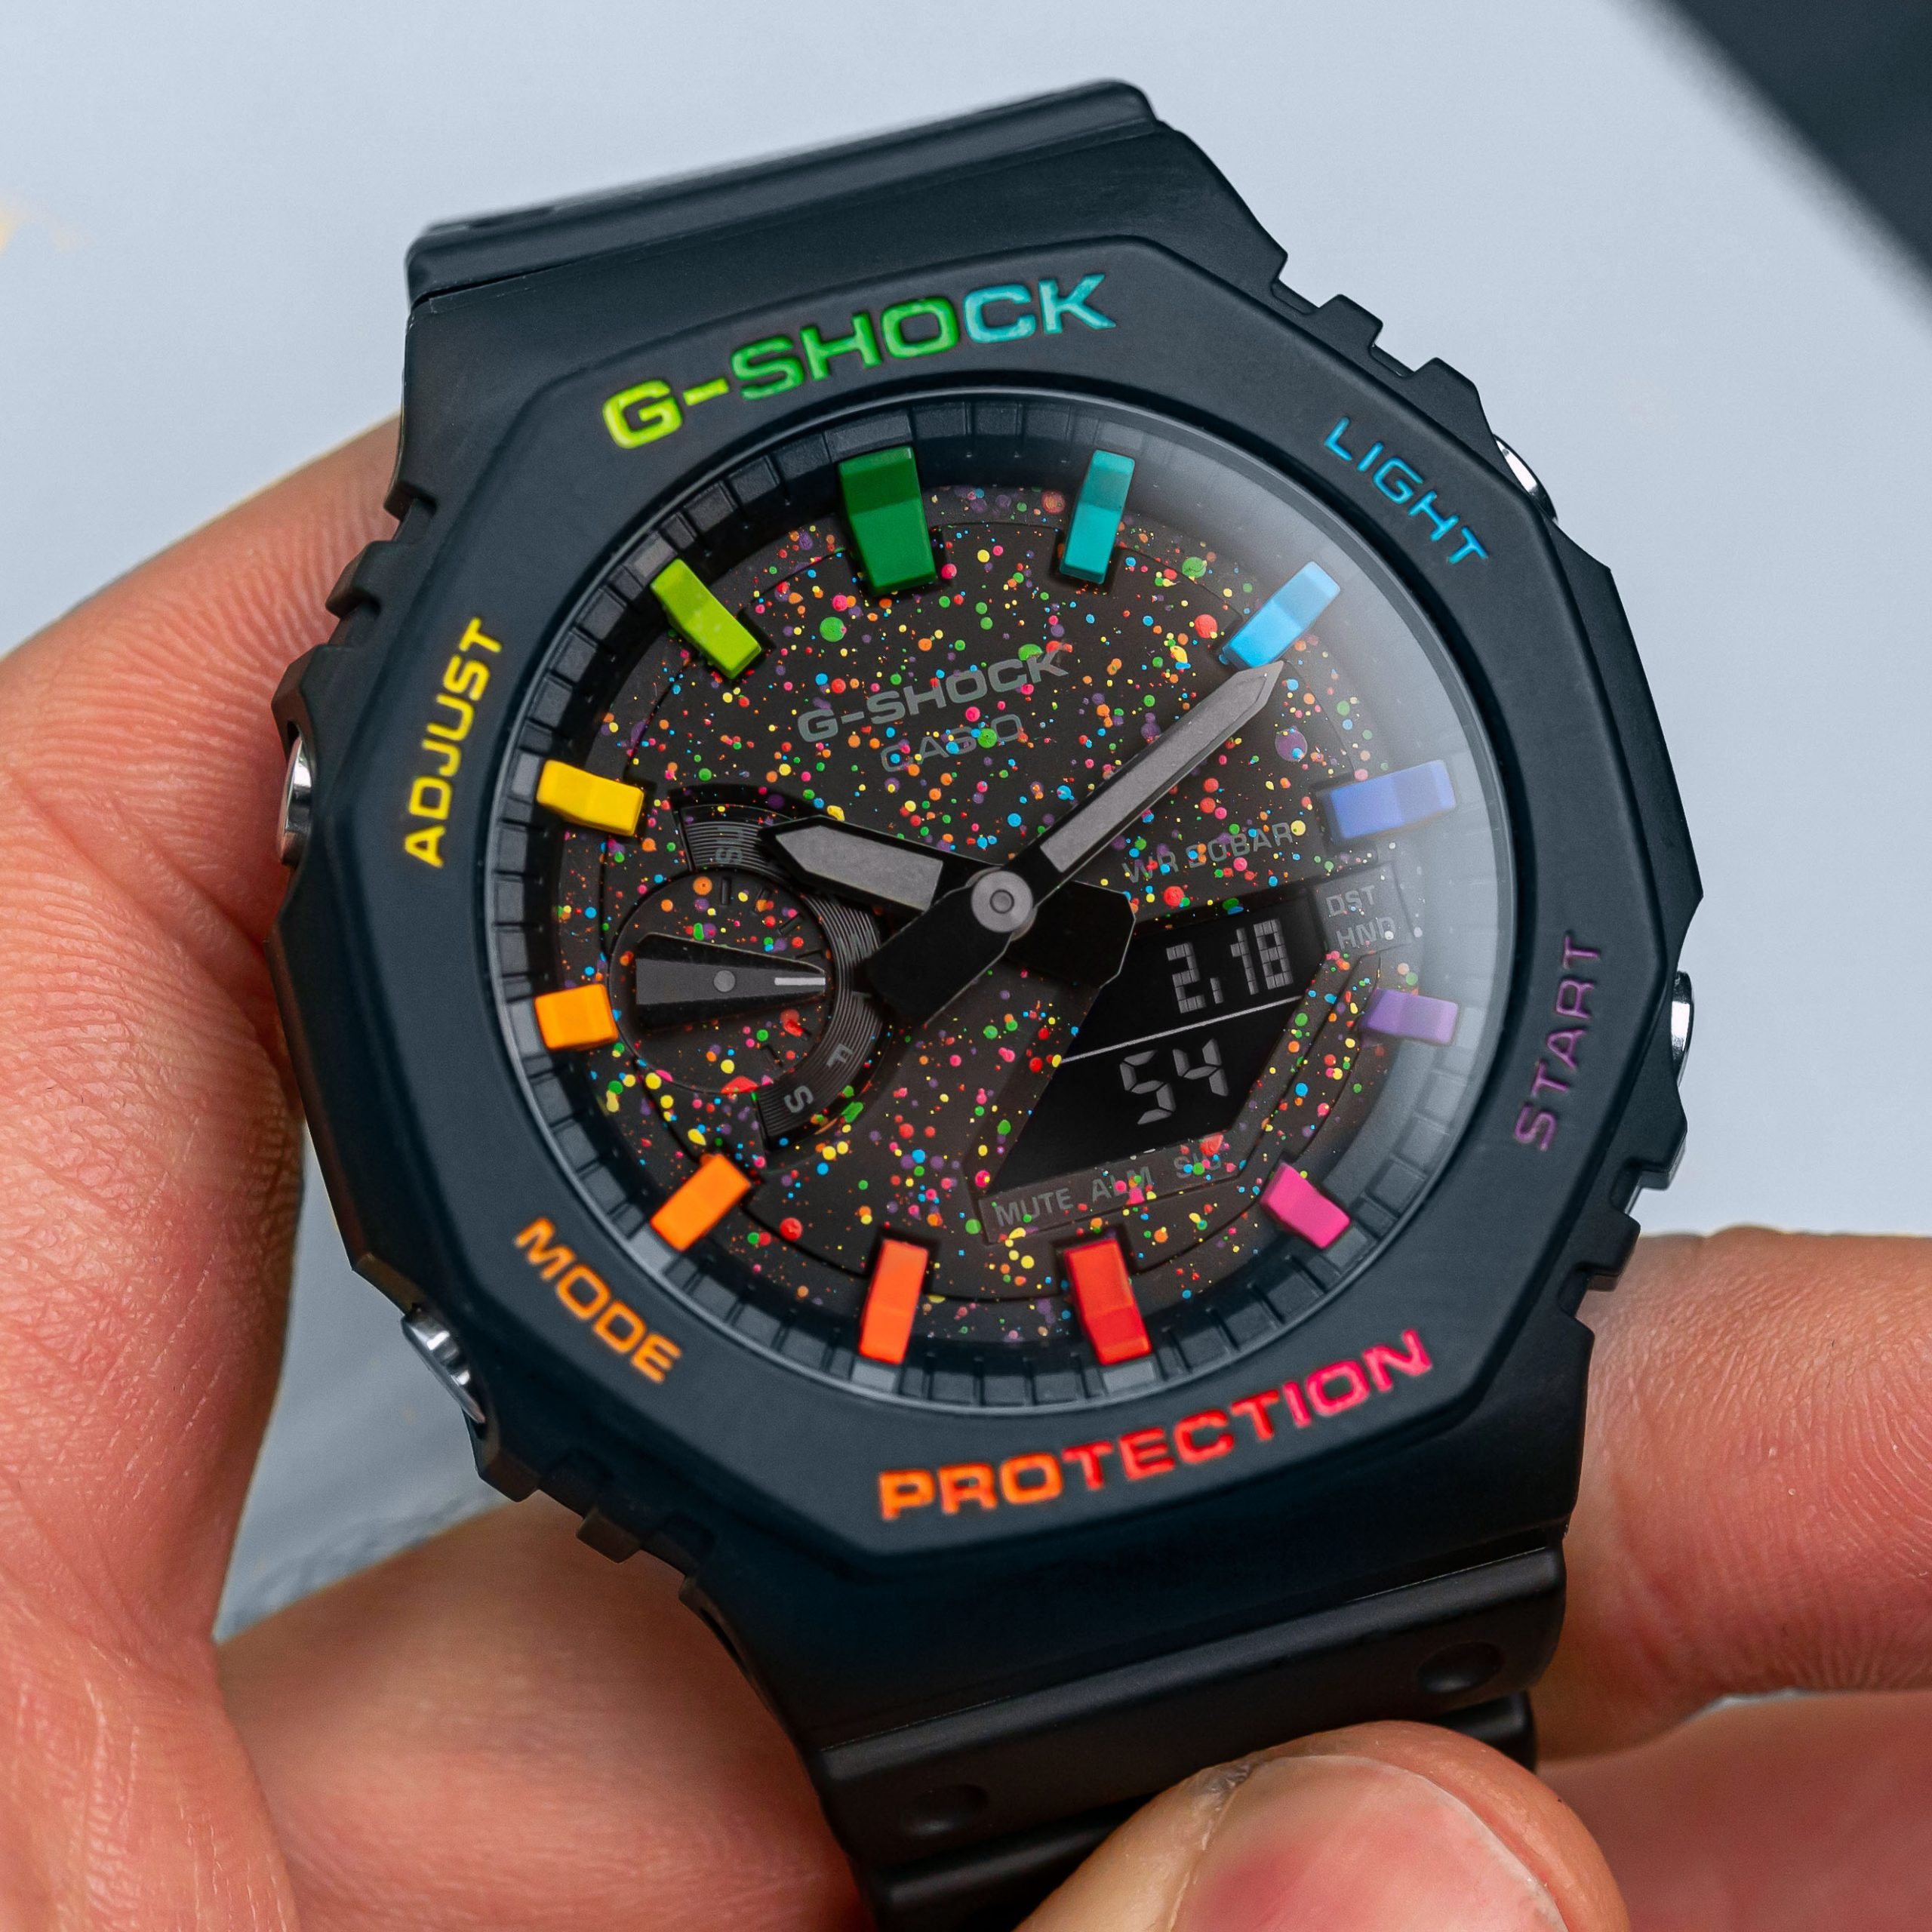 Custom Casio G-Shock 'CasiOak' Galaxy Limited Edition IFLW x The Dial Artist Collaboration Hand-painted